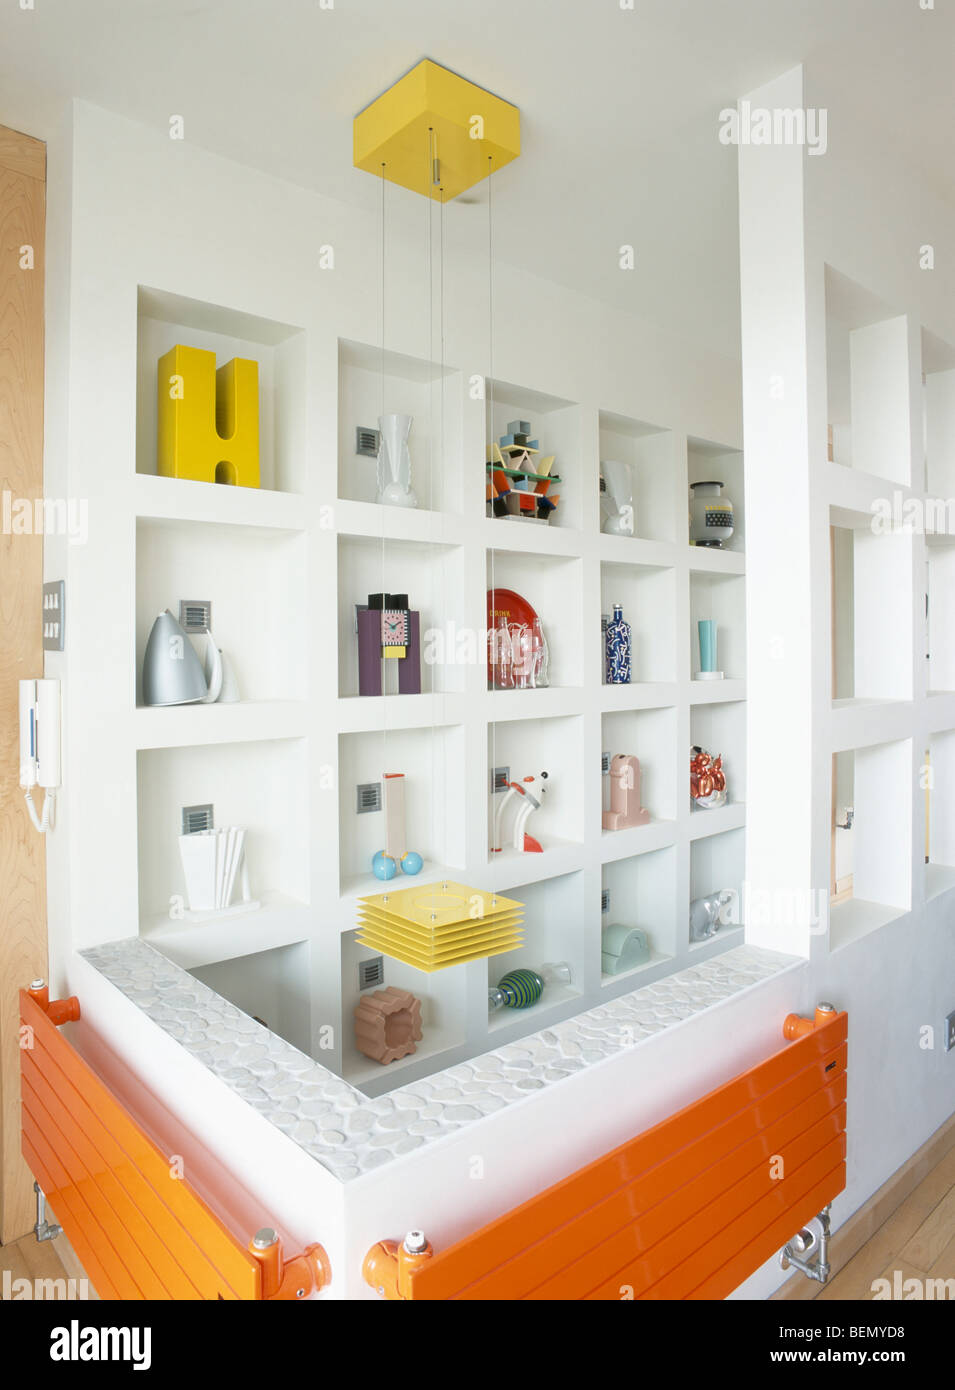 Recessed white cube shelving with collection of modern sculpture in modern white hall with orange radiators - Stock Image